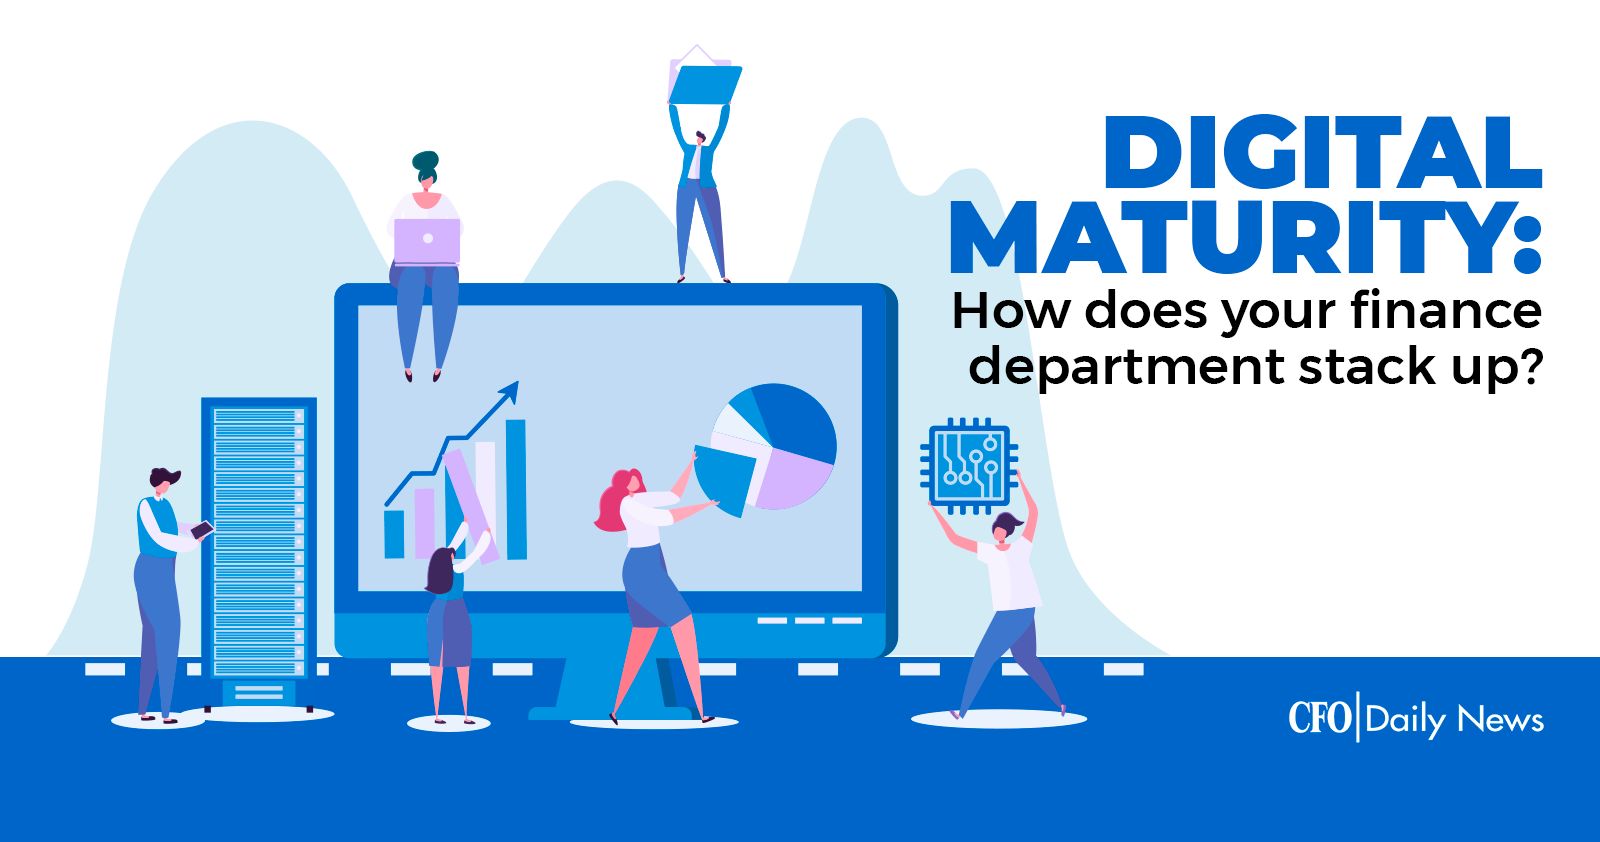 digital maturity how does your finance dept stack up